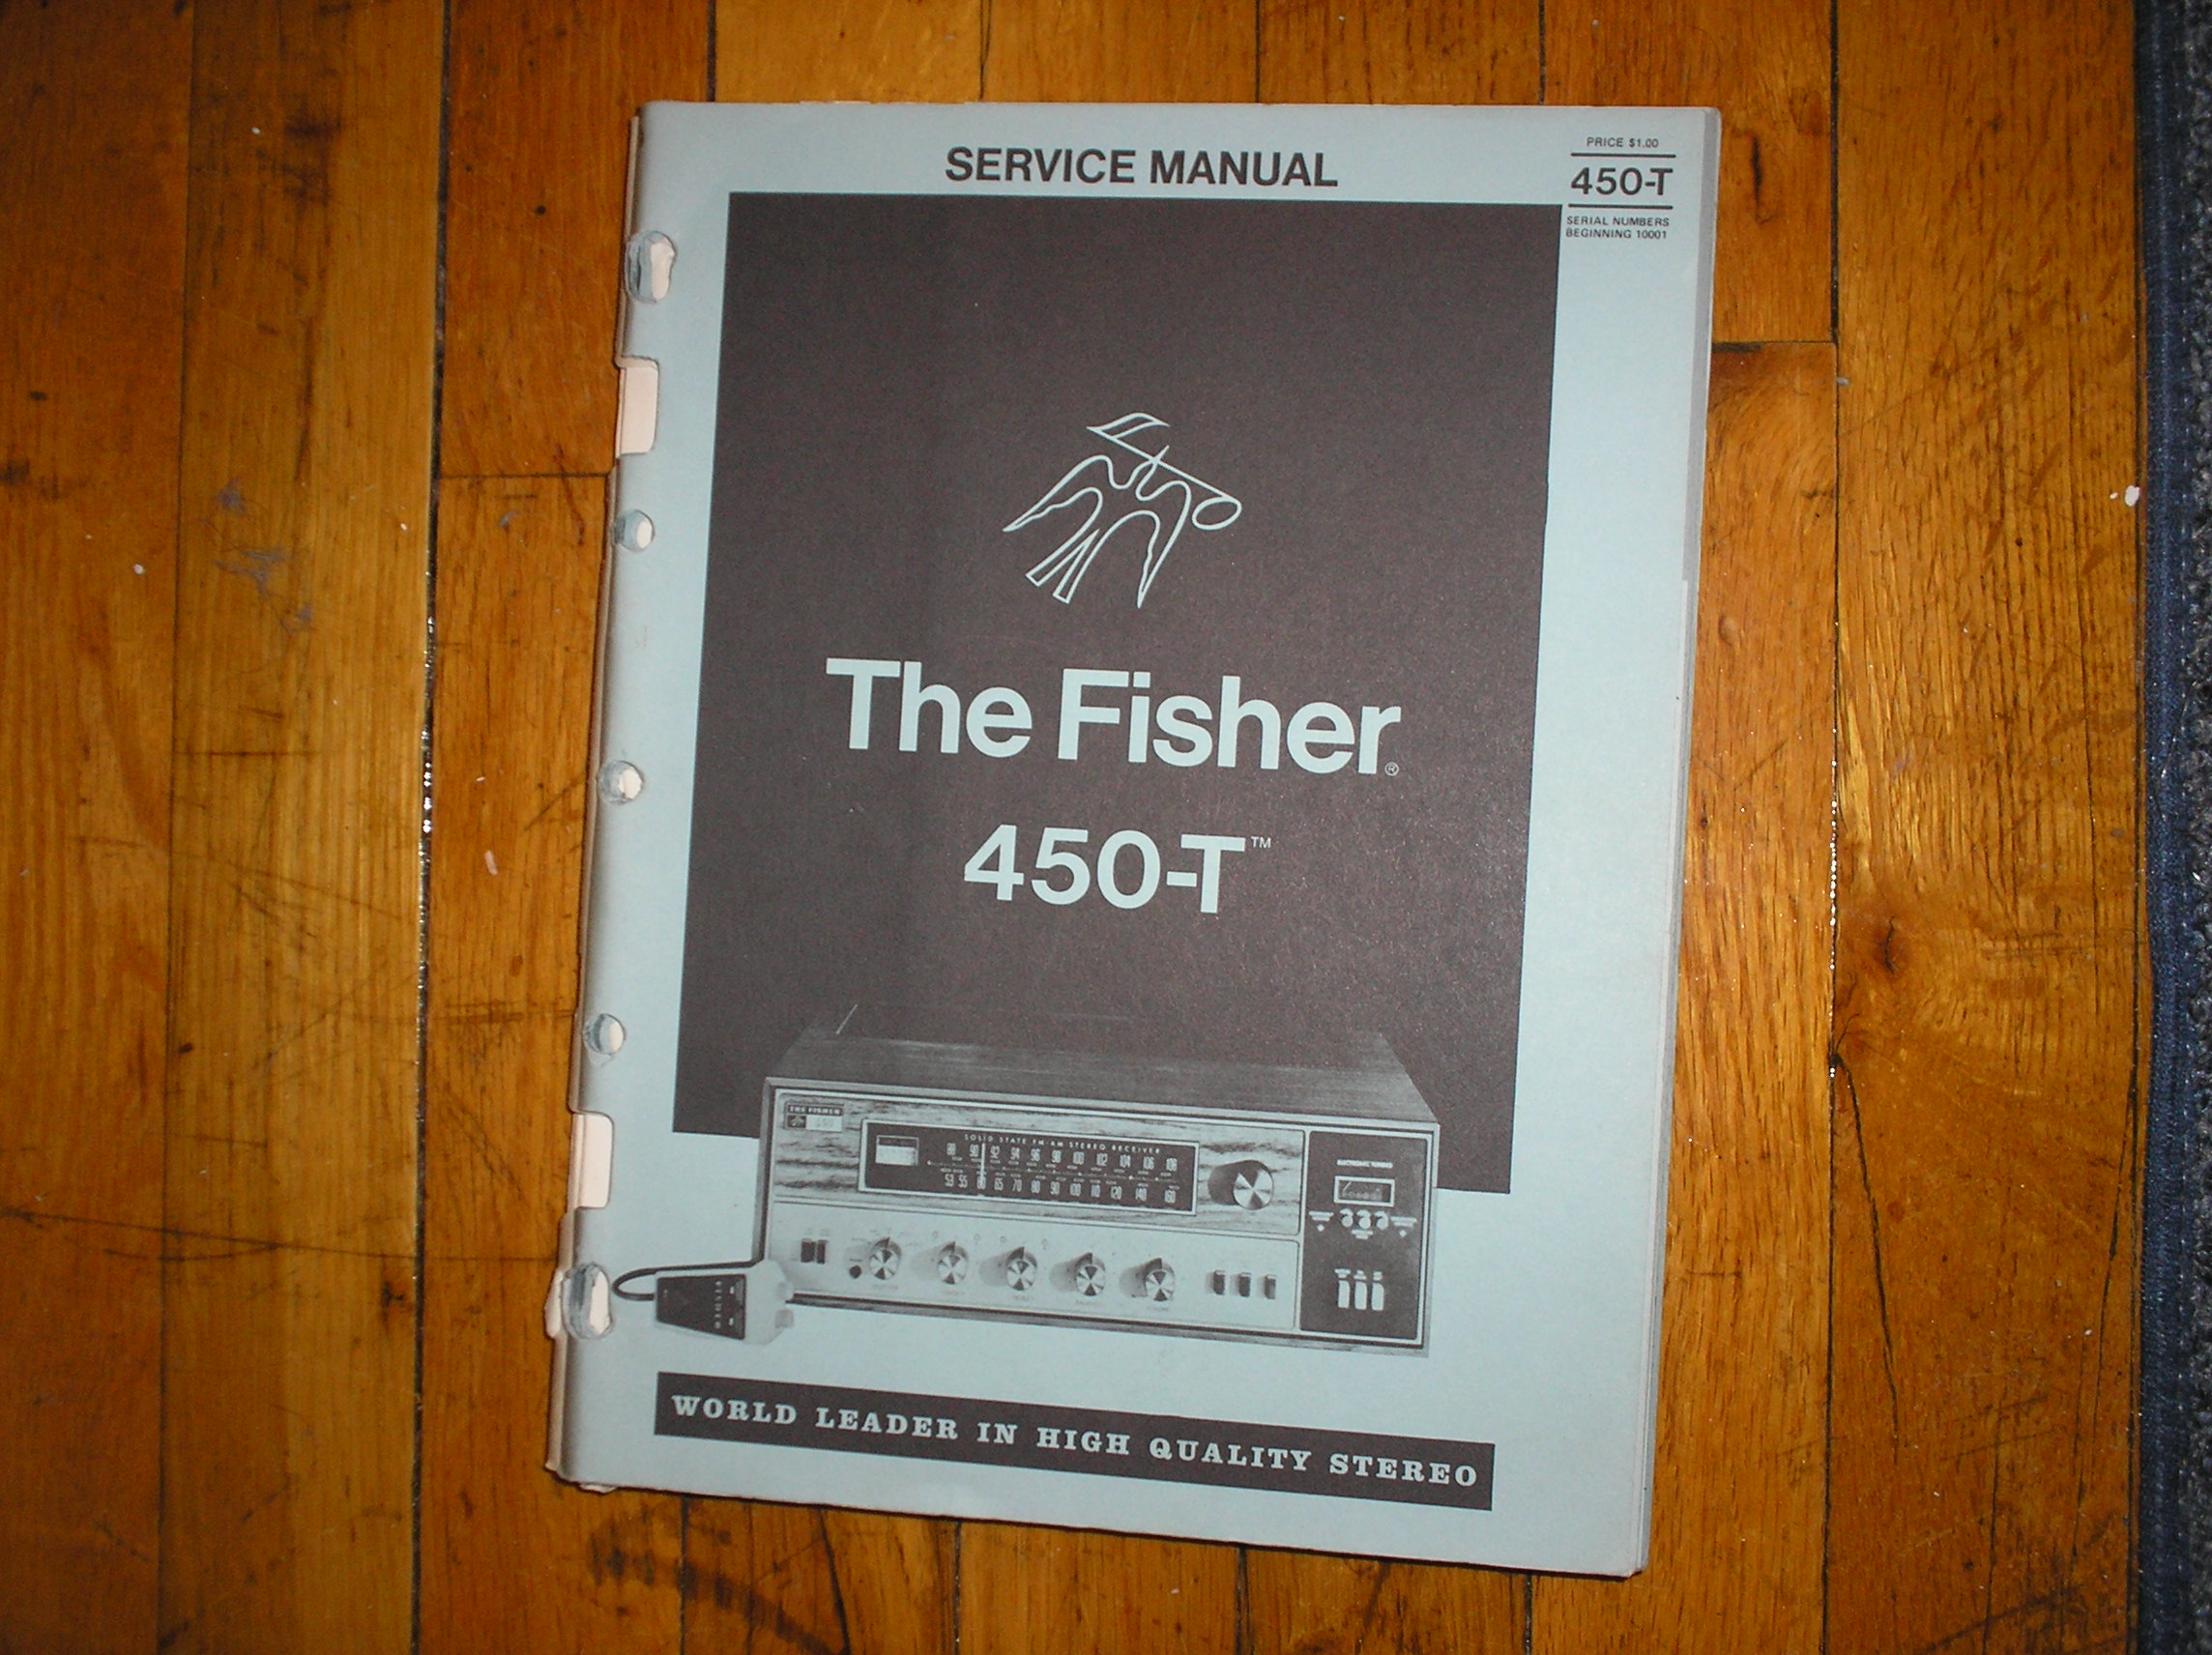 450-T Receiver Service Manual